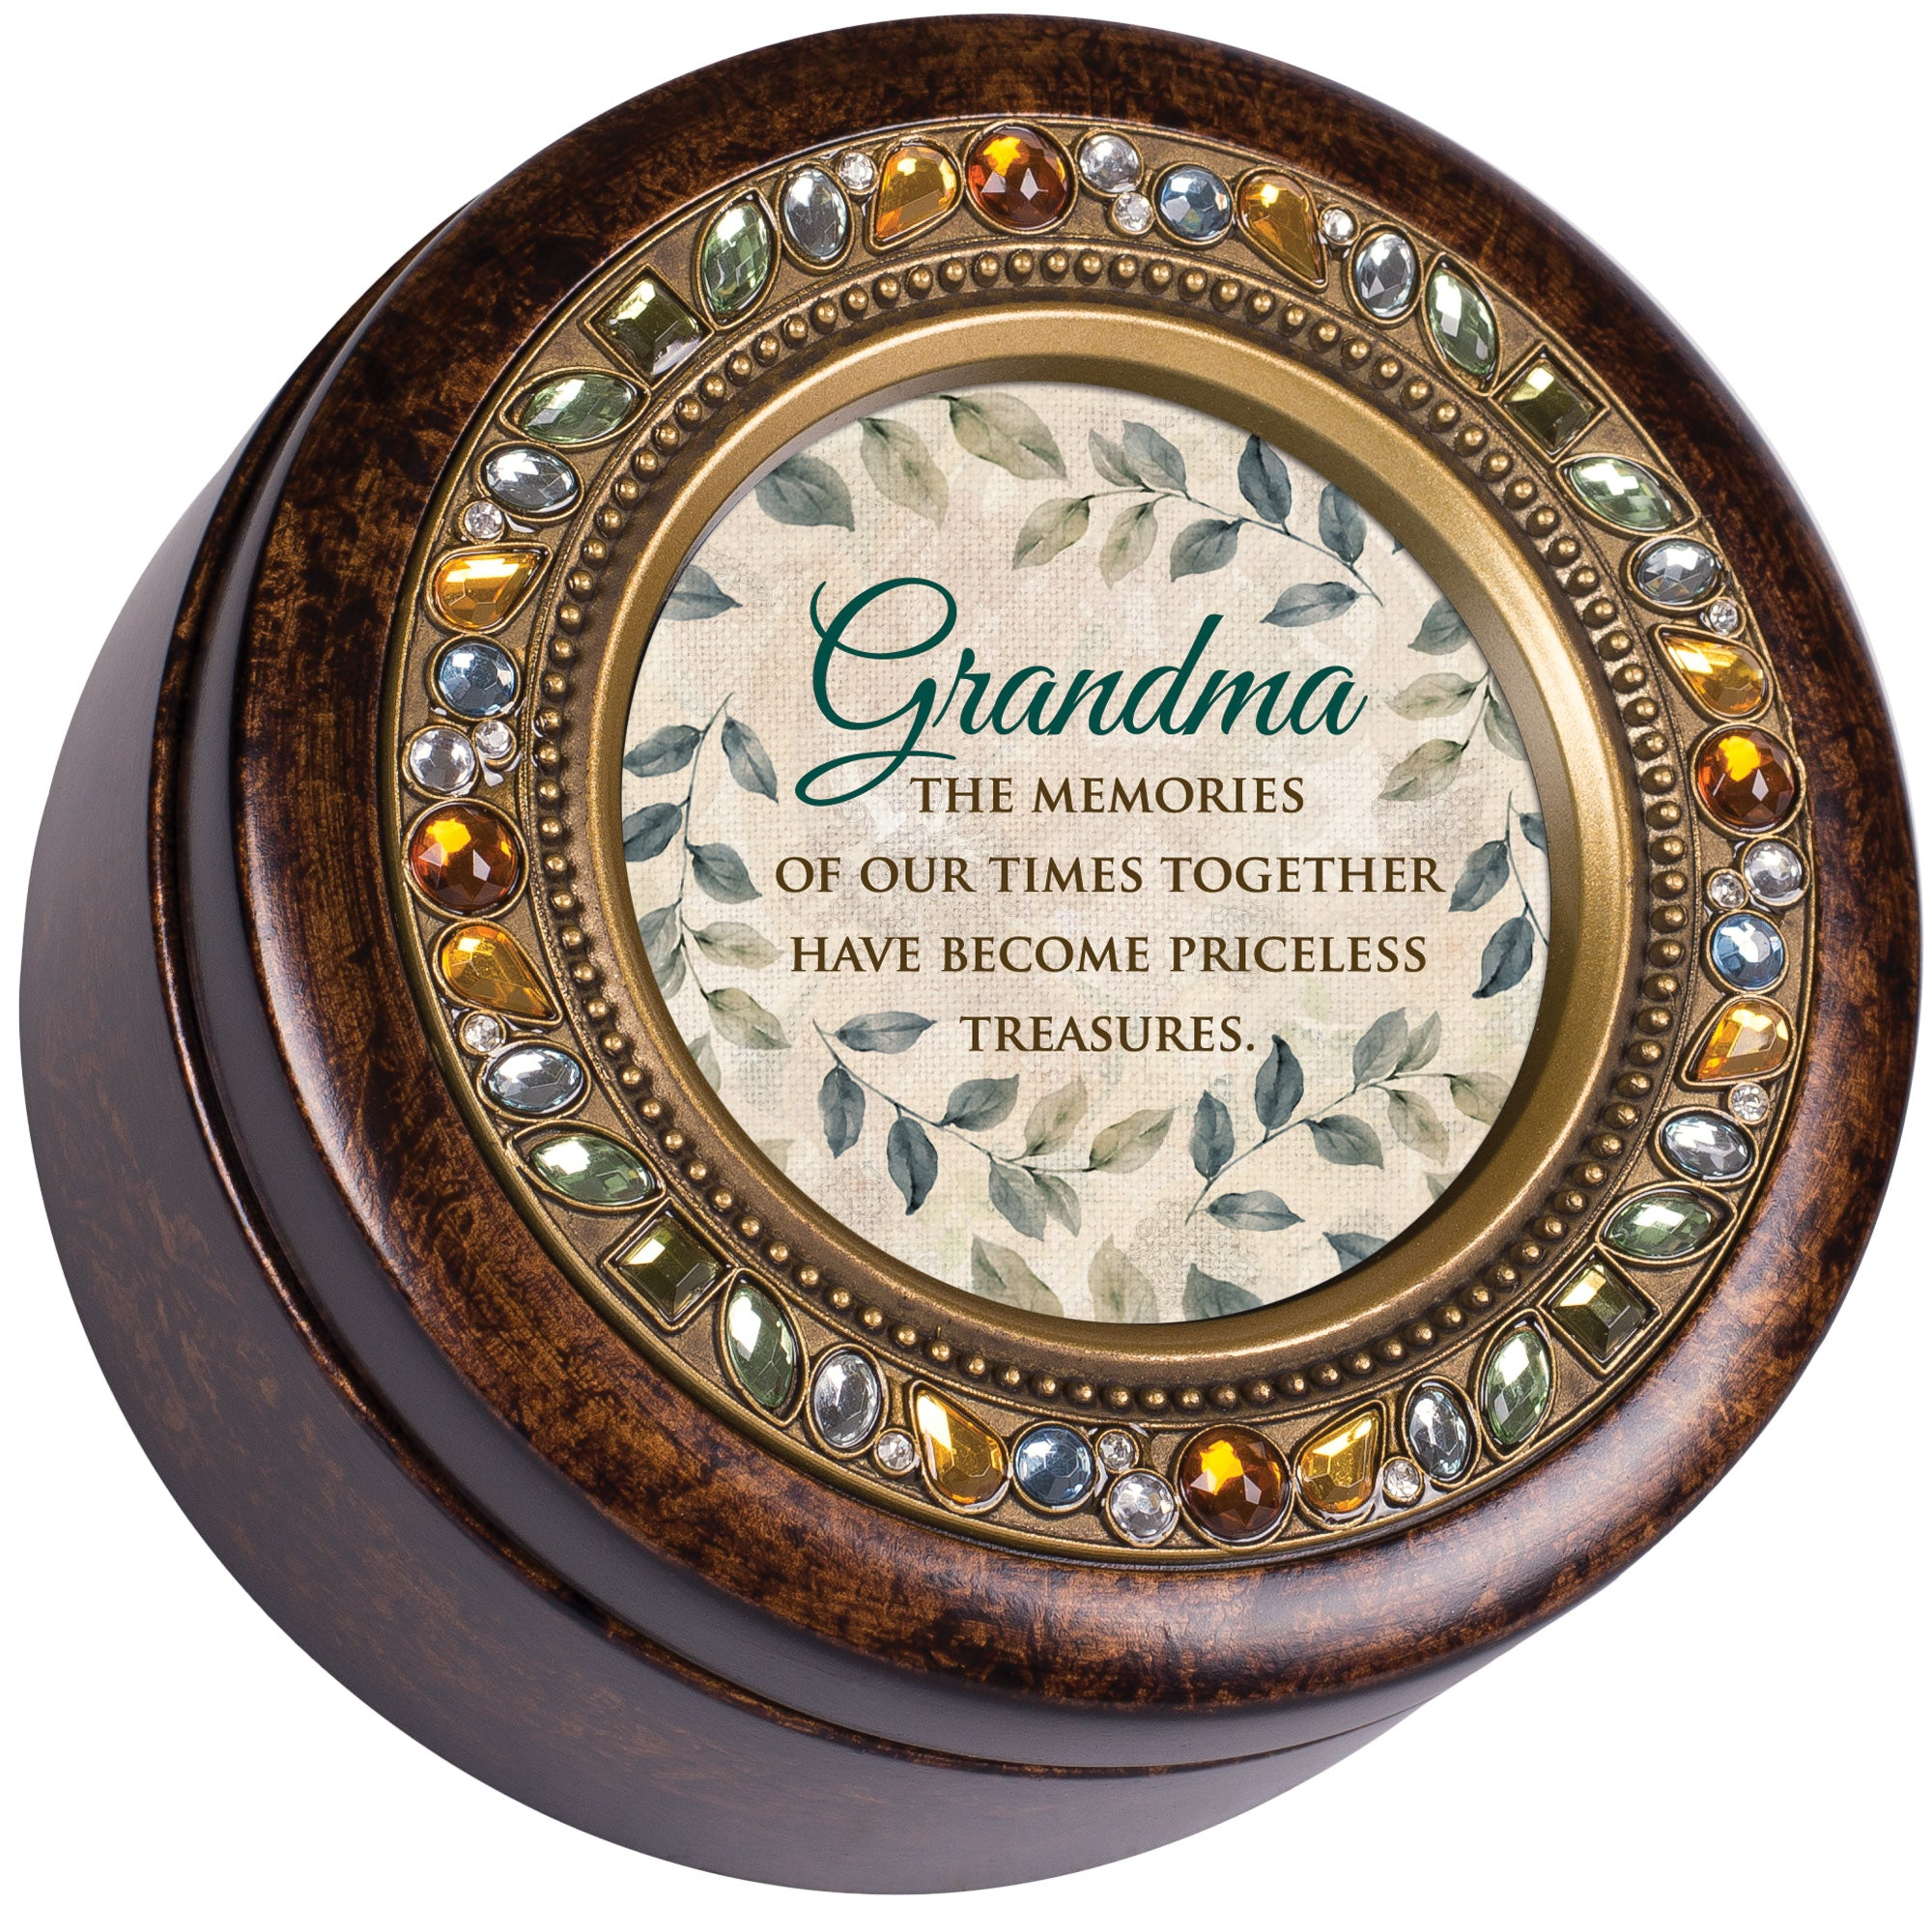 GRANDMA MEMORIES TREASURES MUSIC BOX